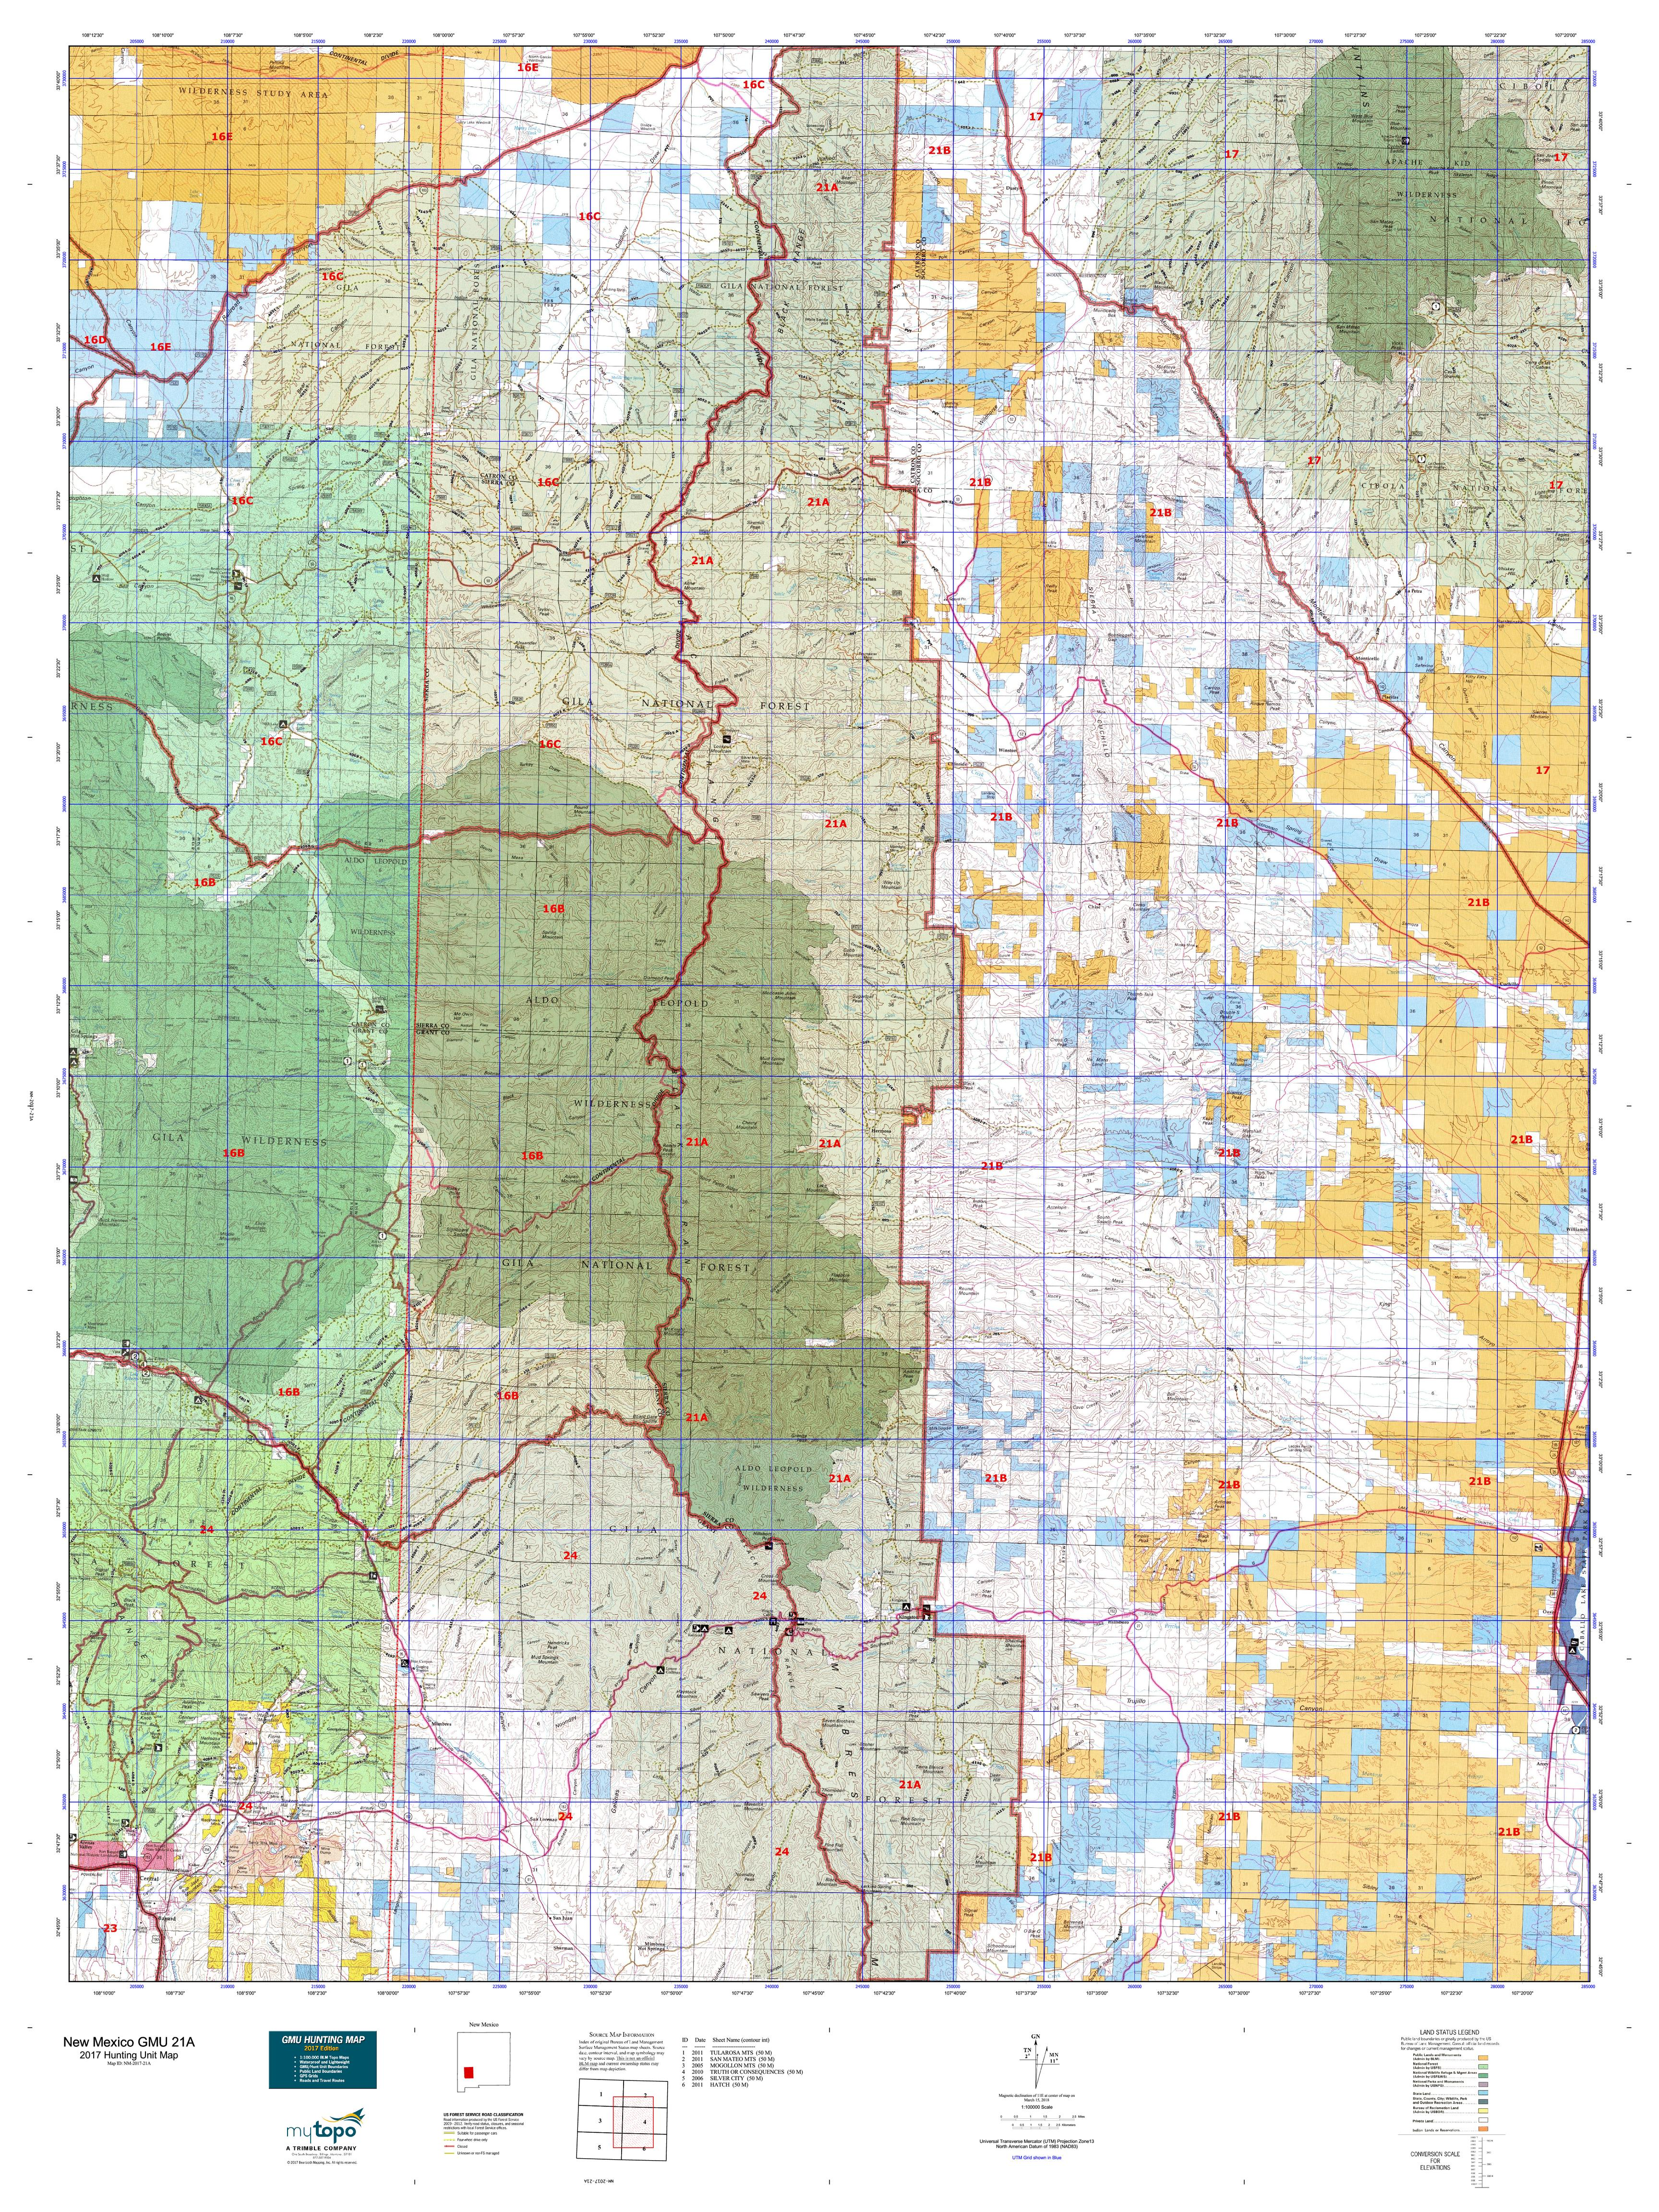 New Mexico GMU A Map MyTopo - Detailed map of new mexico